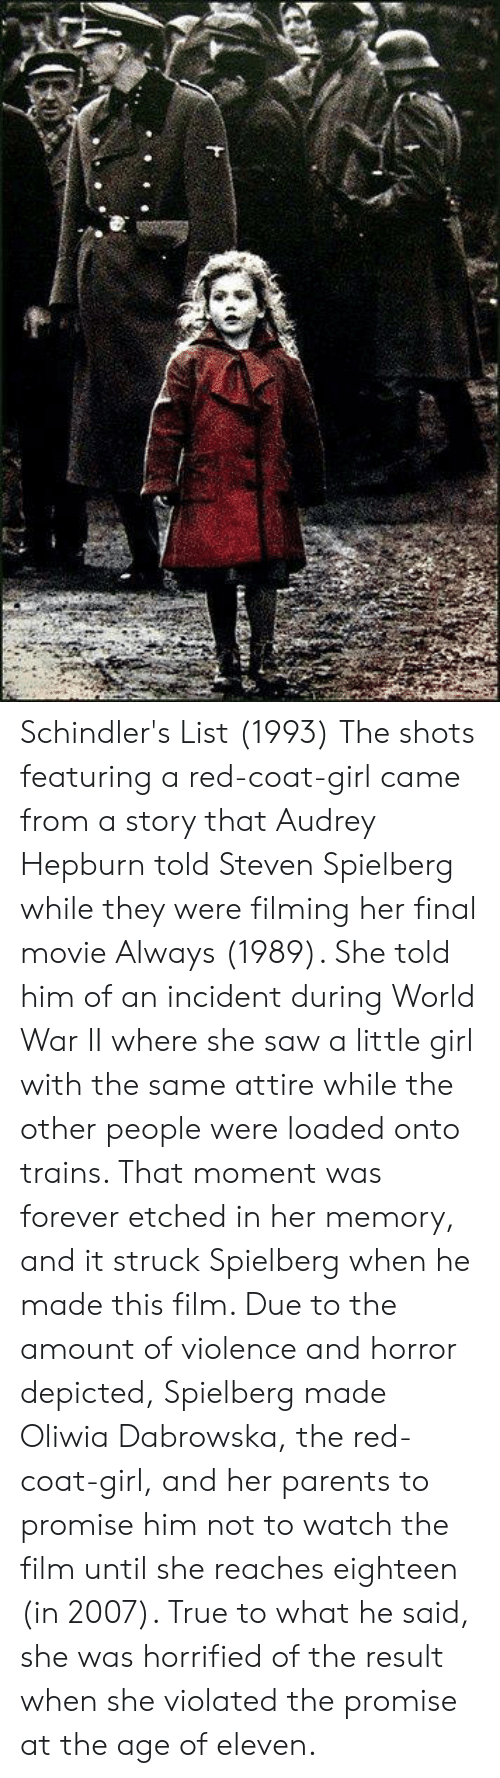 horrified: Schindler's List (1993)  The shots featuring a red-coat-girl came from a story that Audrey Hepburn told Steven Spielberg while they were filming her final movie Always (1989). She told him of an incident during World War II where she saw a little girl with the same attire while the other people were loaded onto trains. That moment was forever etched in her memory, and it struck Spielberg when he made this film. Due to the amount of violence and horror depicted, Spielberg made Oliwia Dabrowska, the red-coat-girl, and her parents to promise him not to watch the film until she reaches eighteen (in 2007). True to what he said, she was horrified of the result when she violated the promise at the age of eleven.